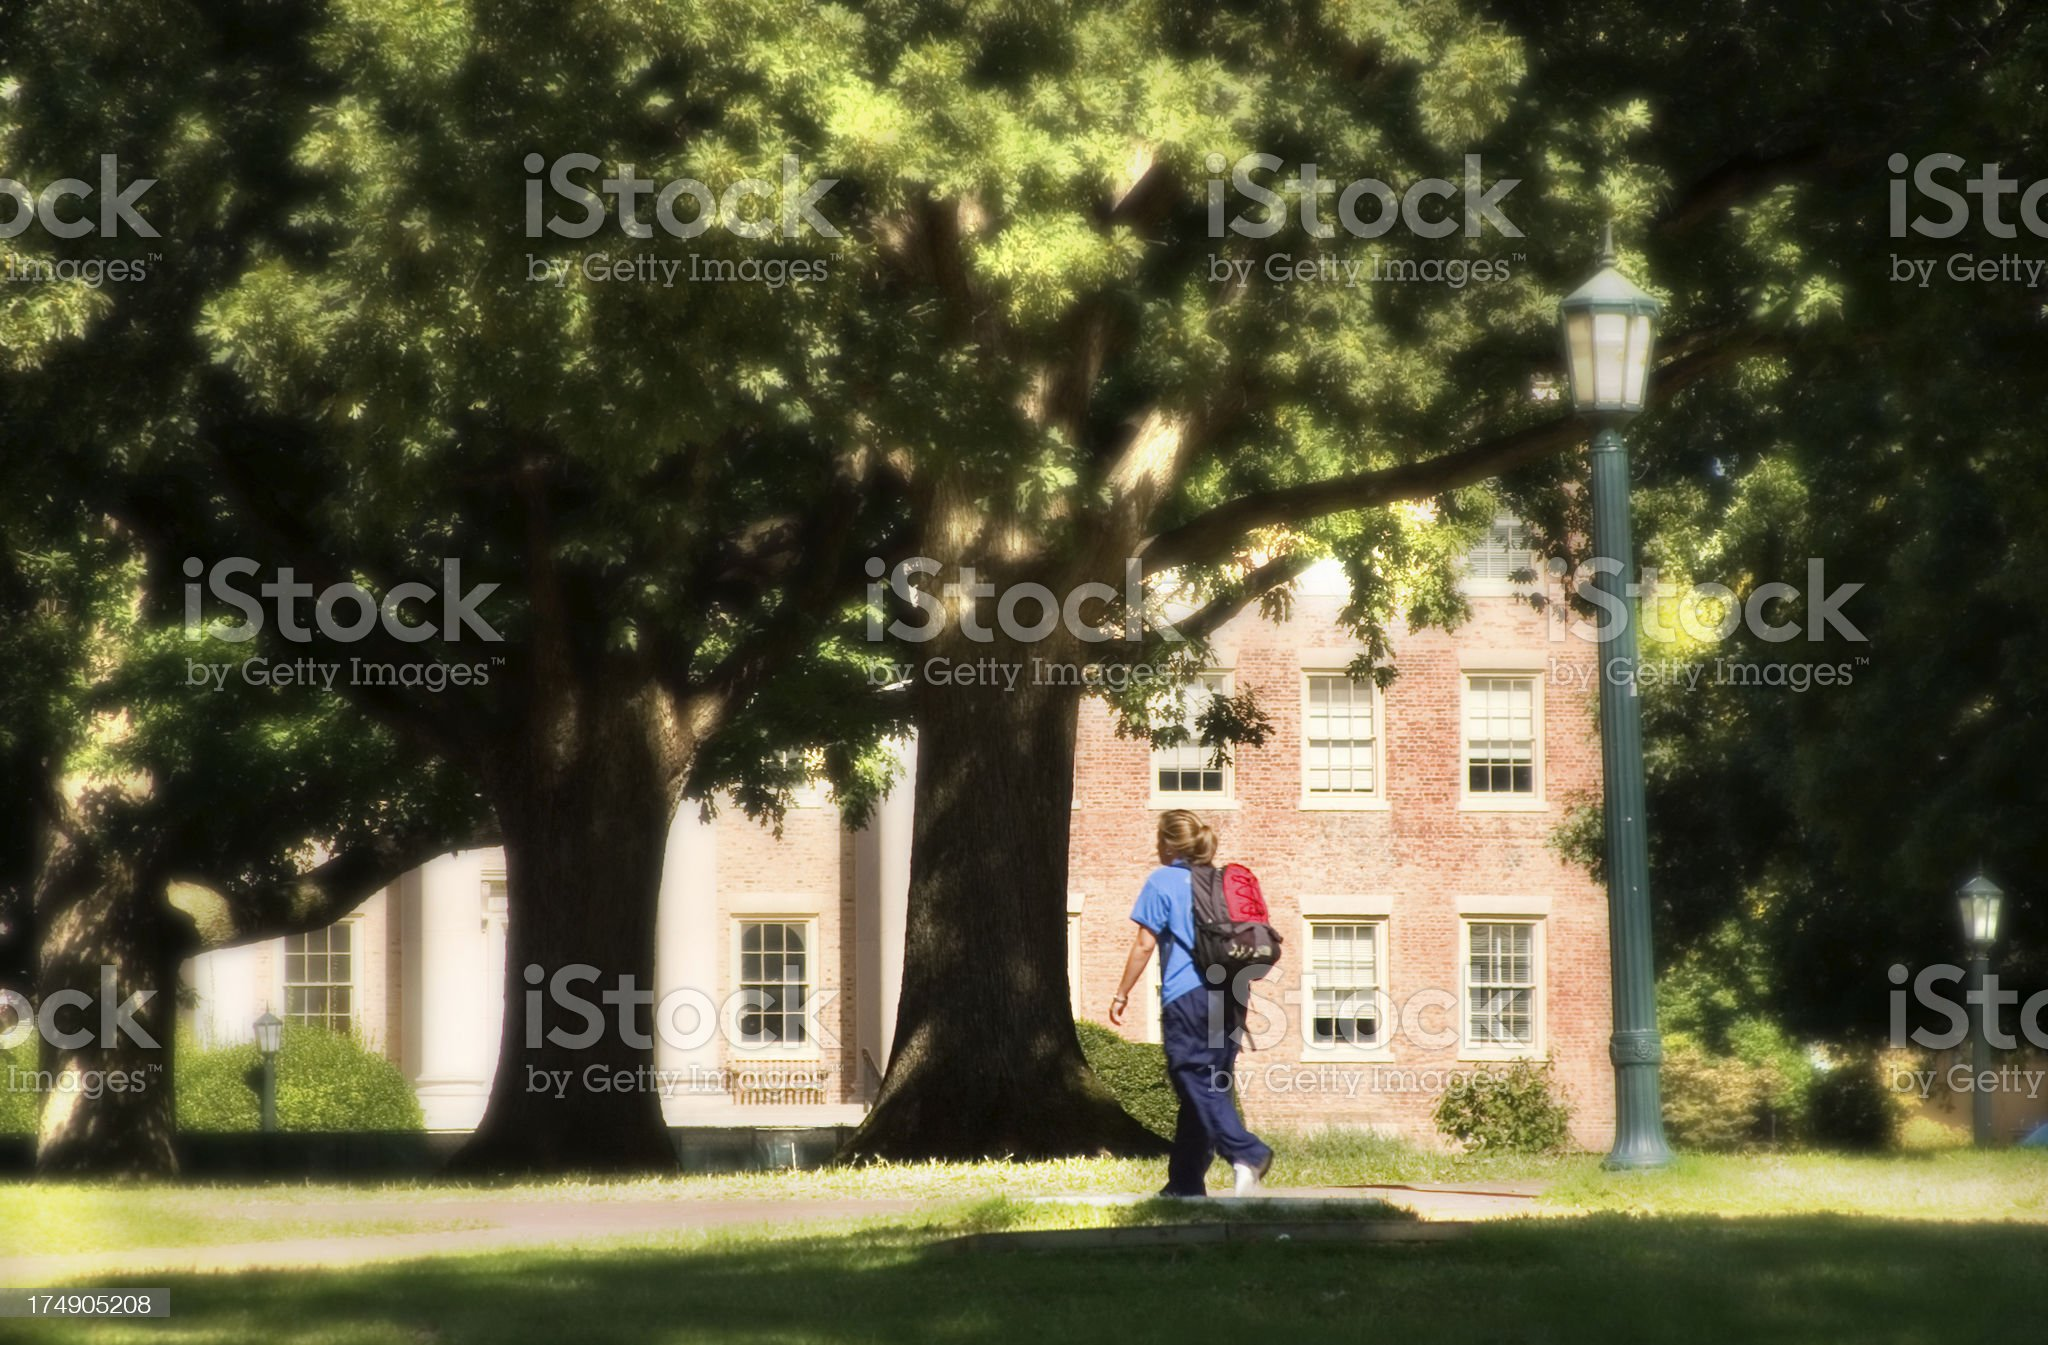 Dreamy Day On Campus royalty-free stock photo